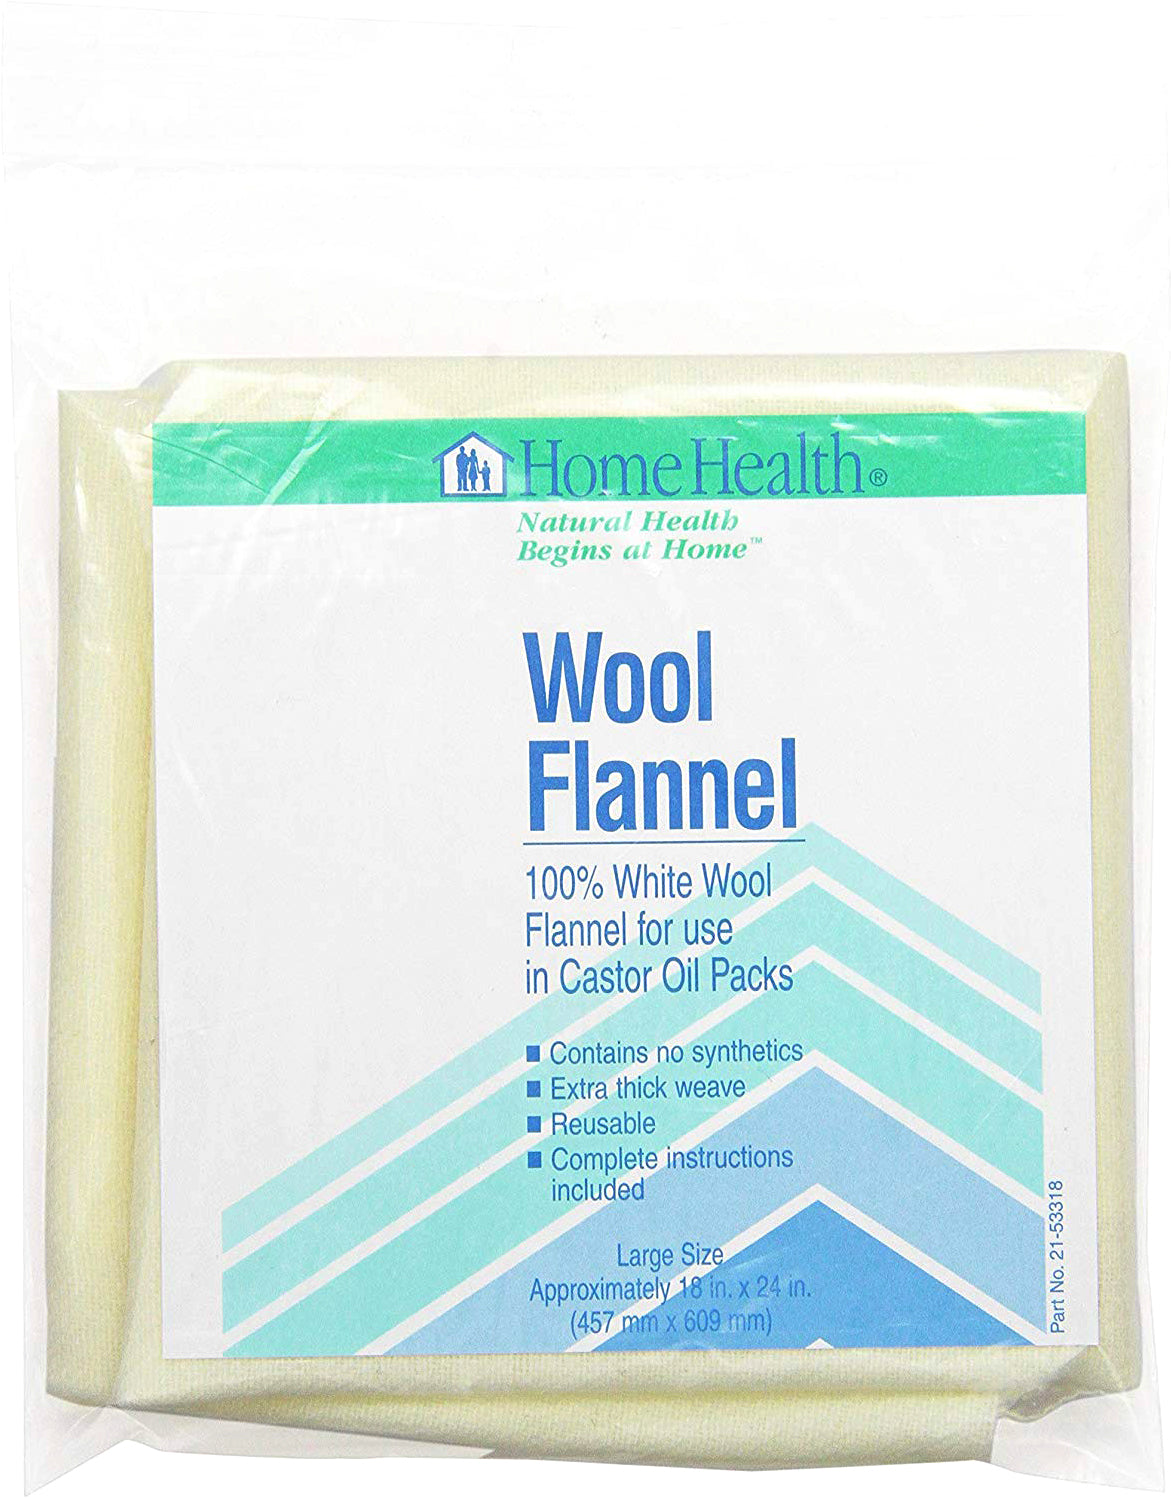 "Wool Flannel - 100% White Wool Flannel for Use in Castor Oil Packs, Approx. 18"" x 24"" (457 mm x 609 mm)"